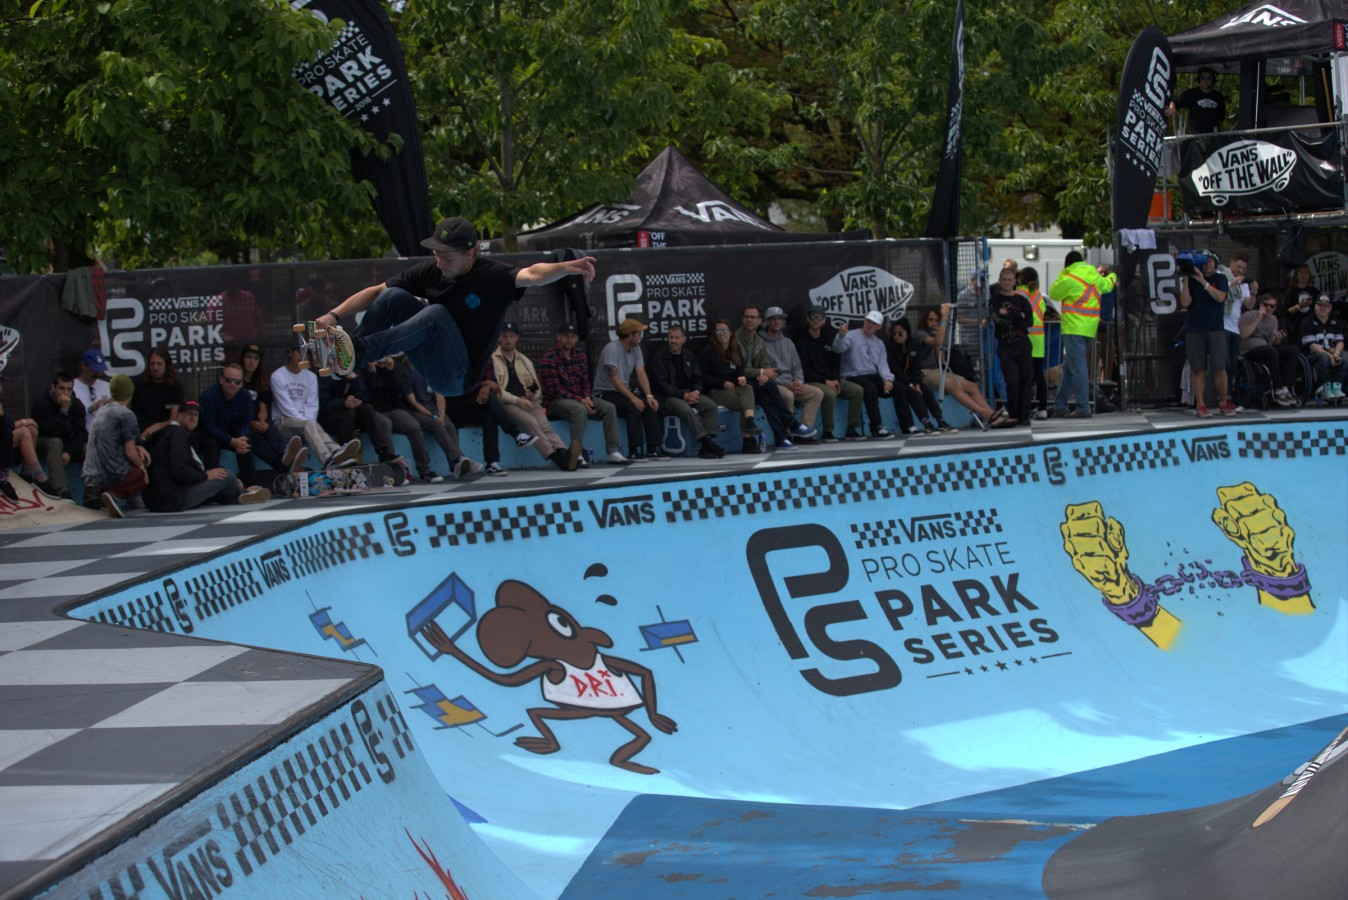 Ben Hatchell during the 2016 Vans Skate Park Series in Vancouver, Canada